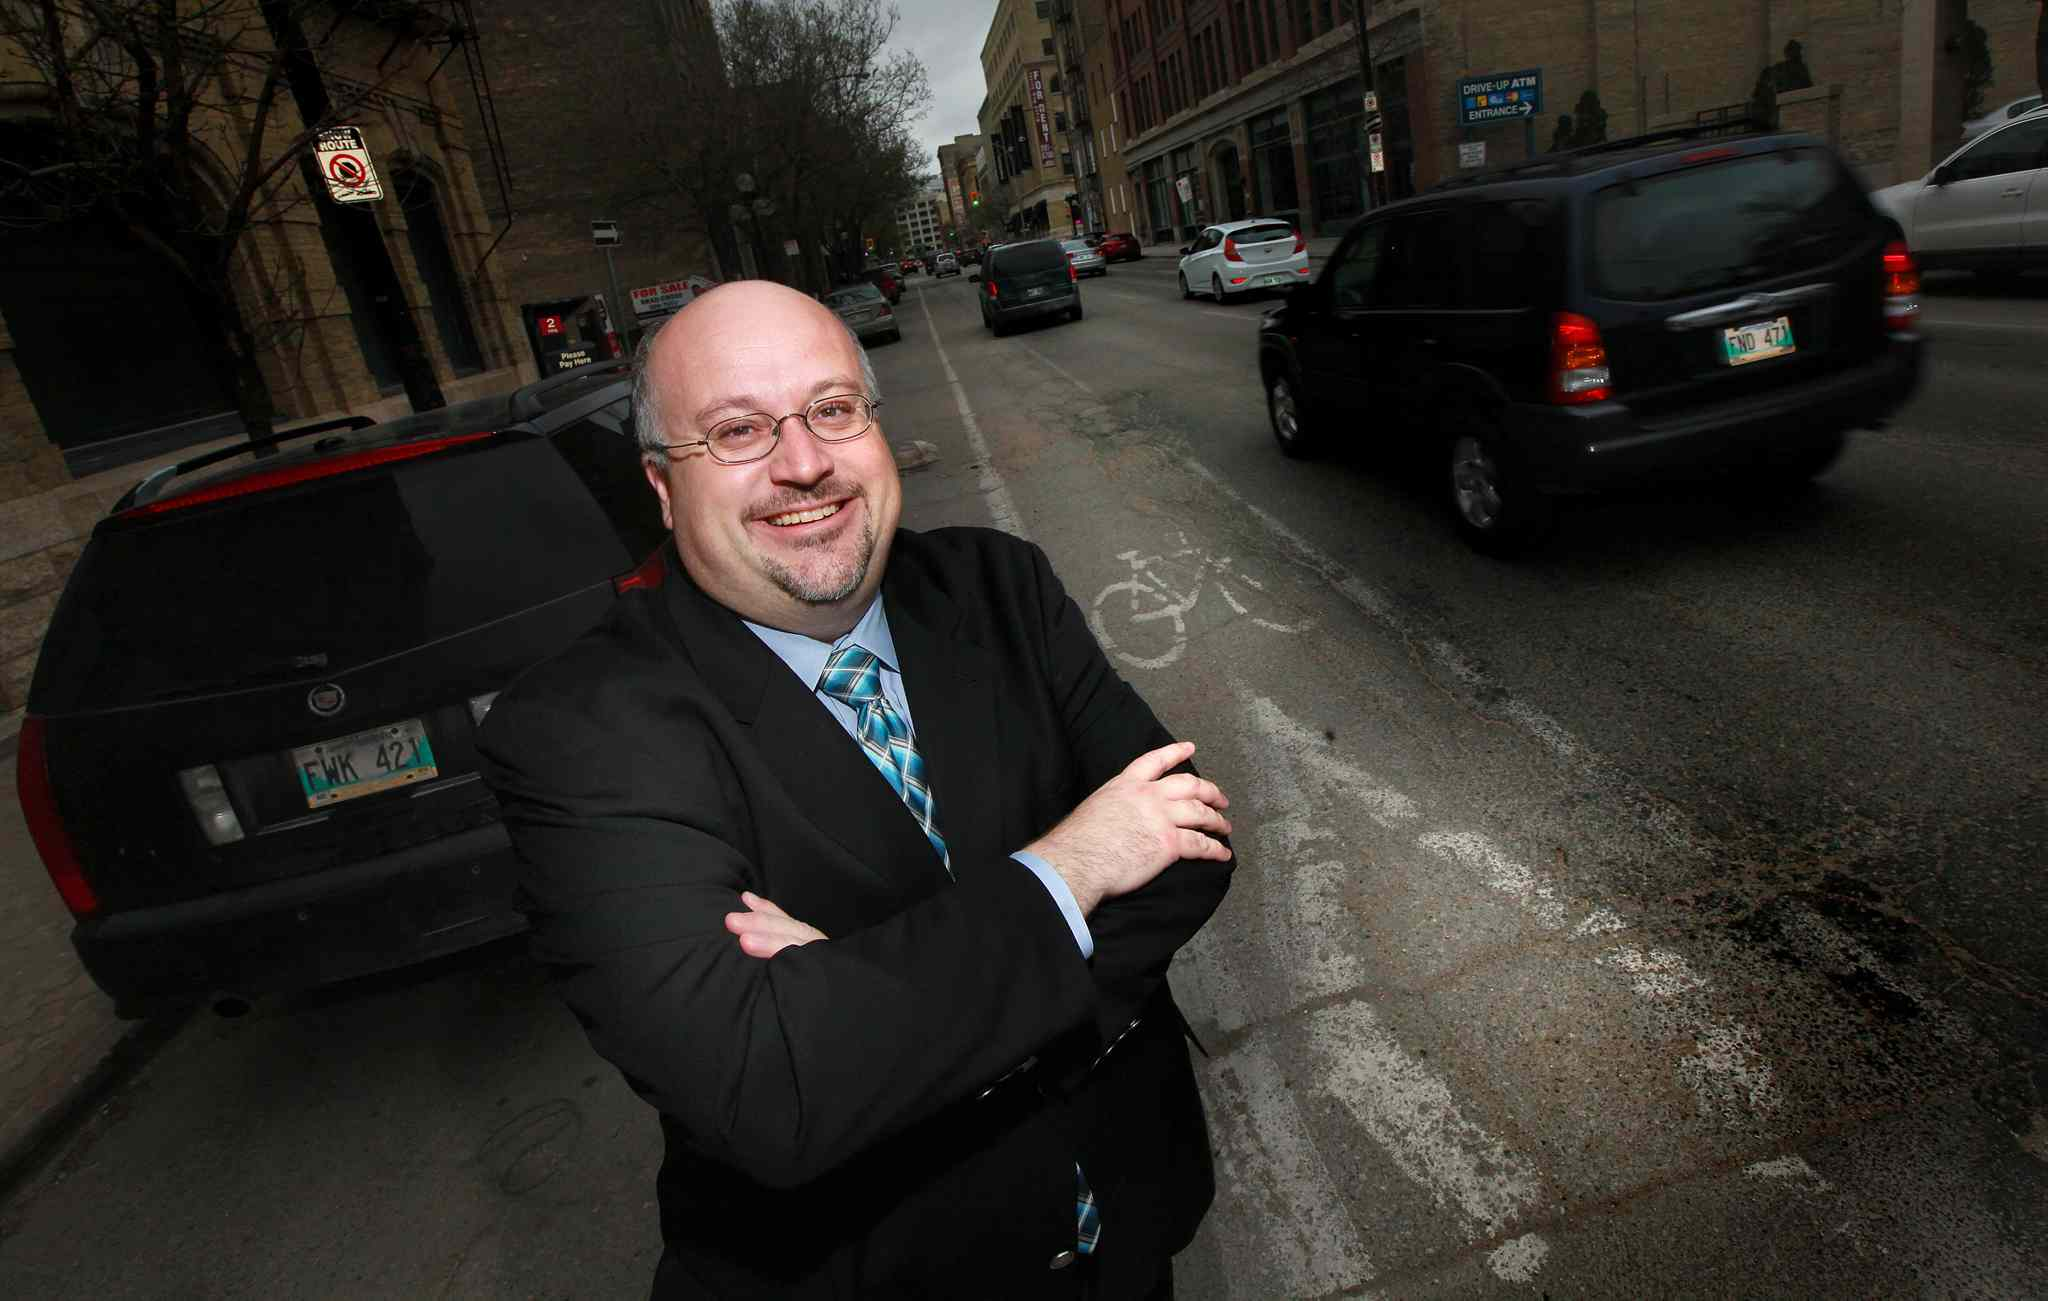 Councillor Russ Wyatt on active transportation plan: '$334 million for cycling infrastructure is simply too much'